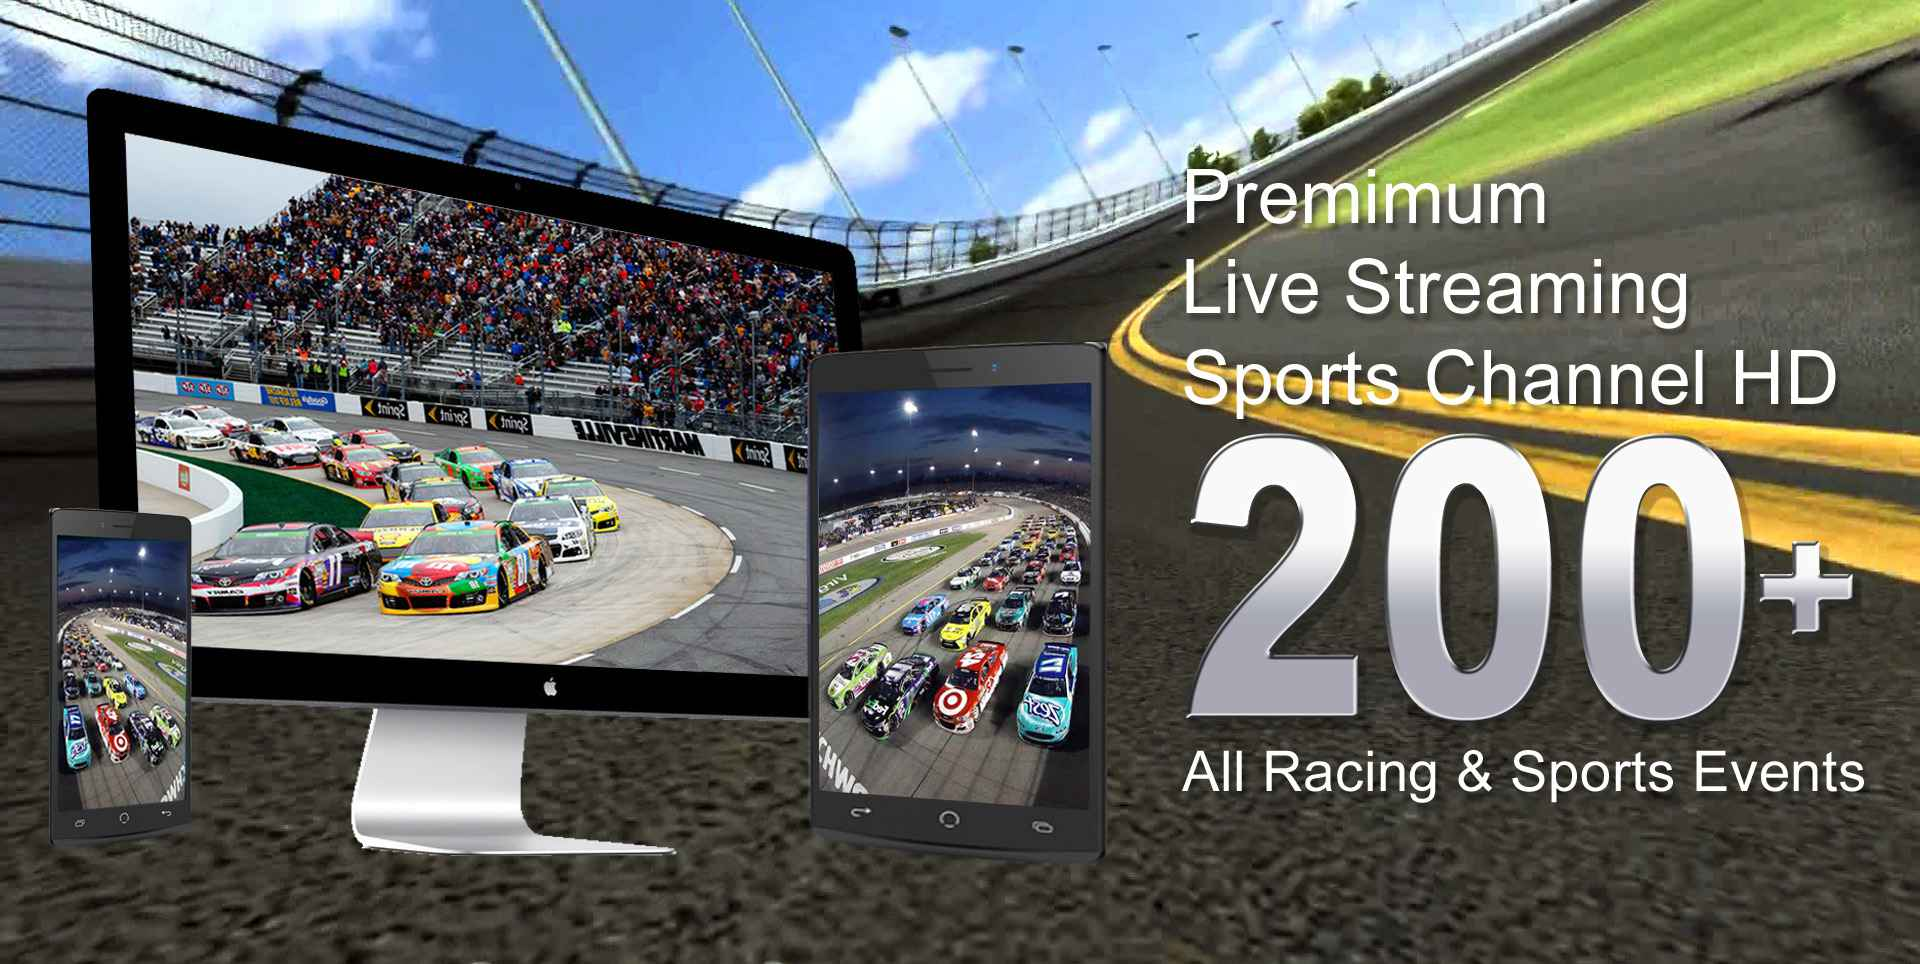 2018 Toyota Owners 400 NASCAR Live